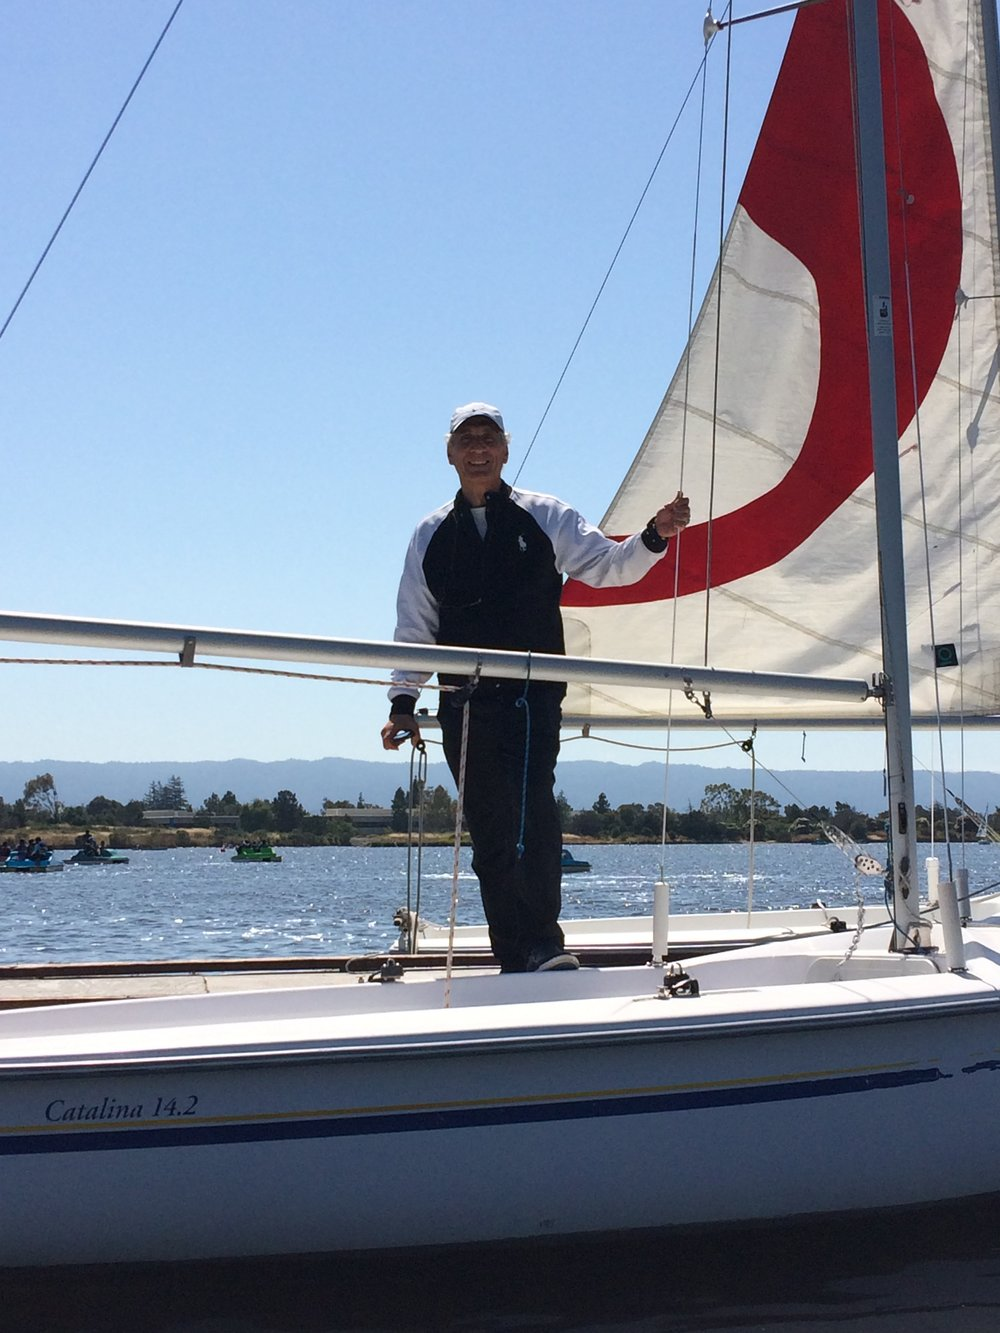 Me on Sailboat Shoreine1.JPG